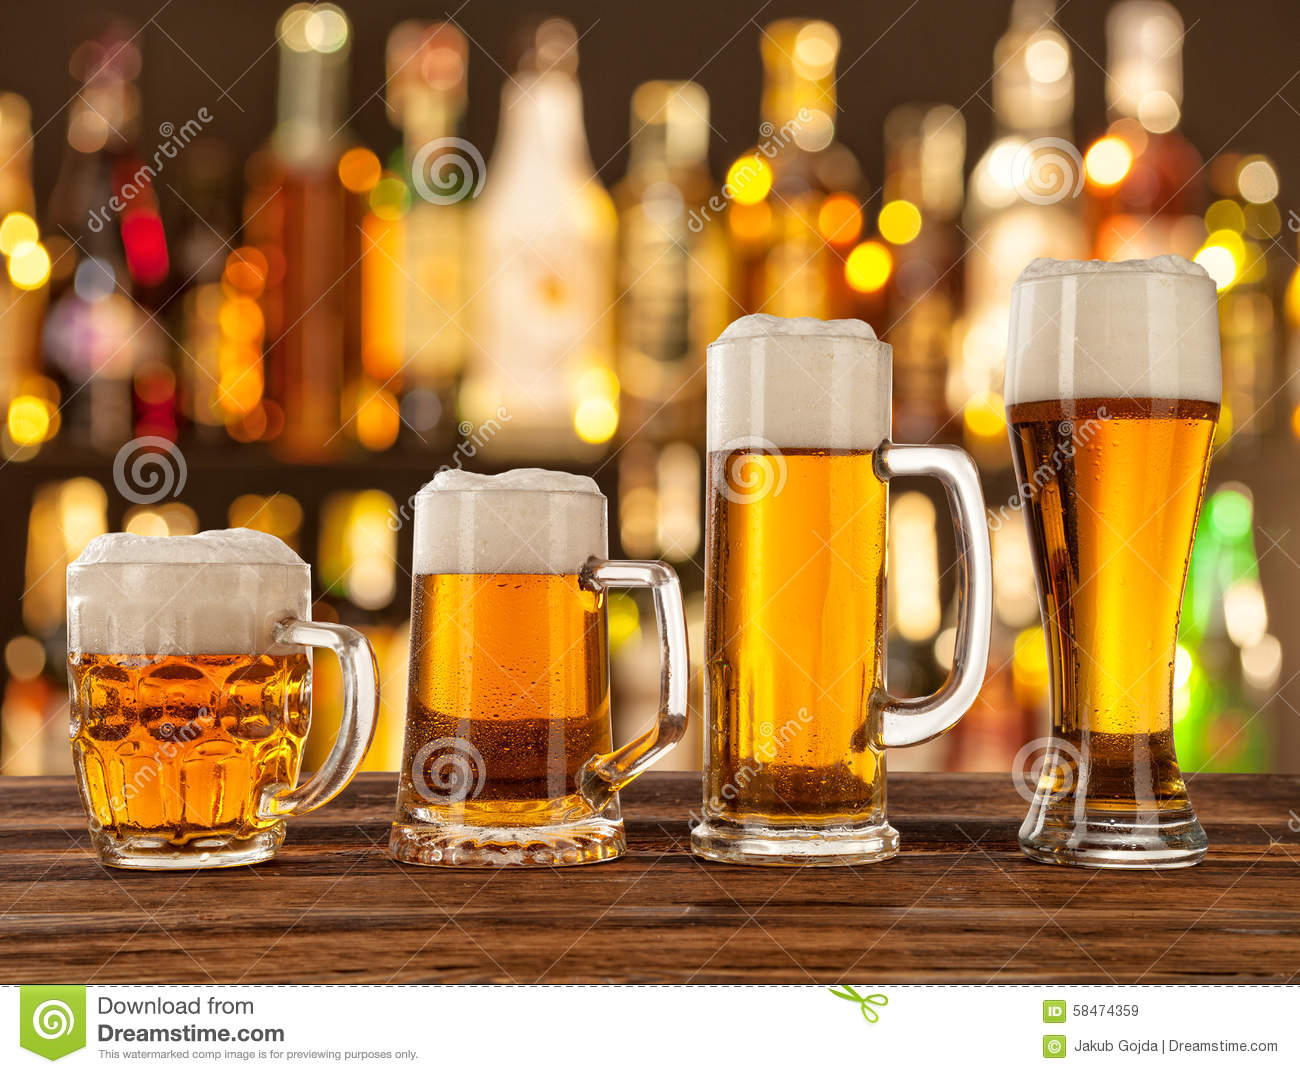 glasses of light beer with bar on background stock image